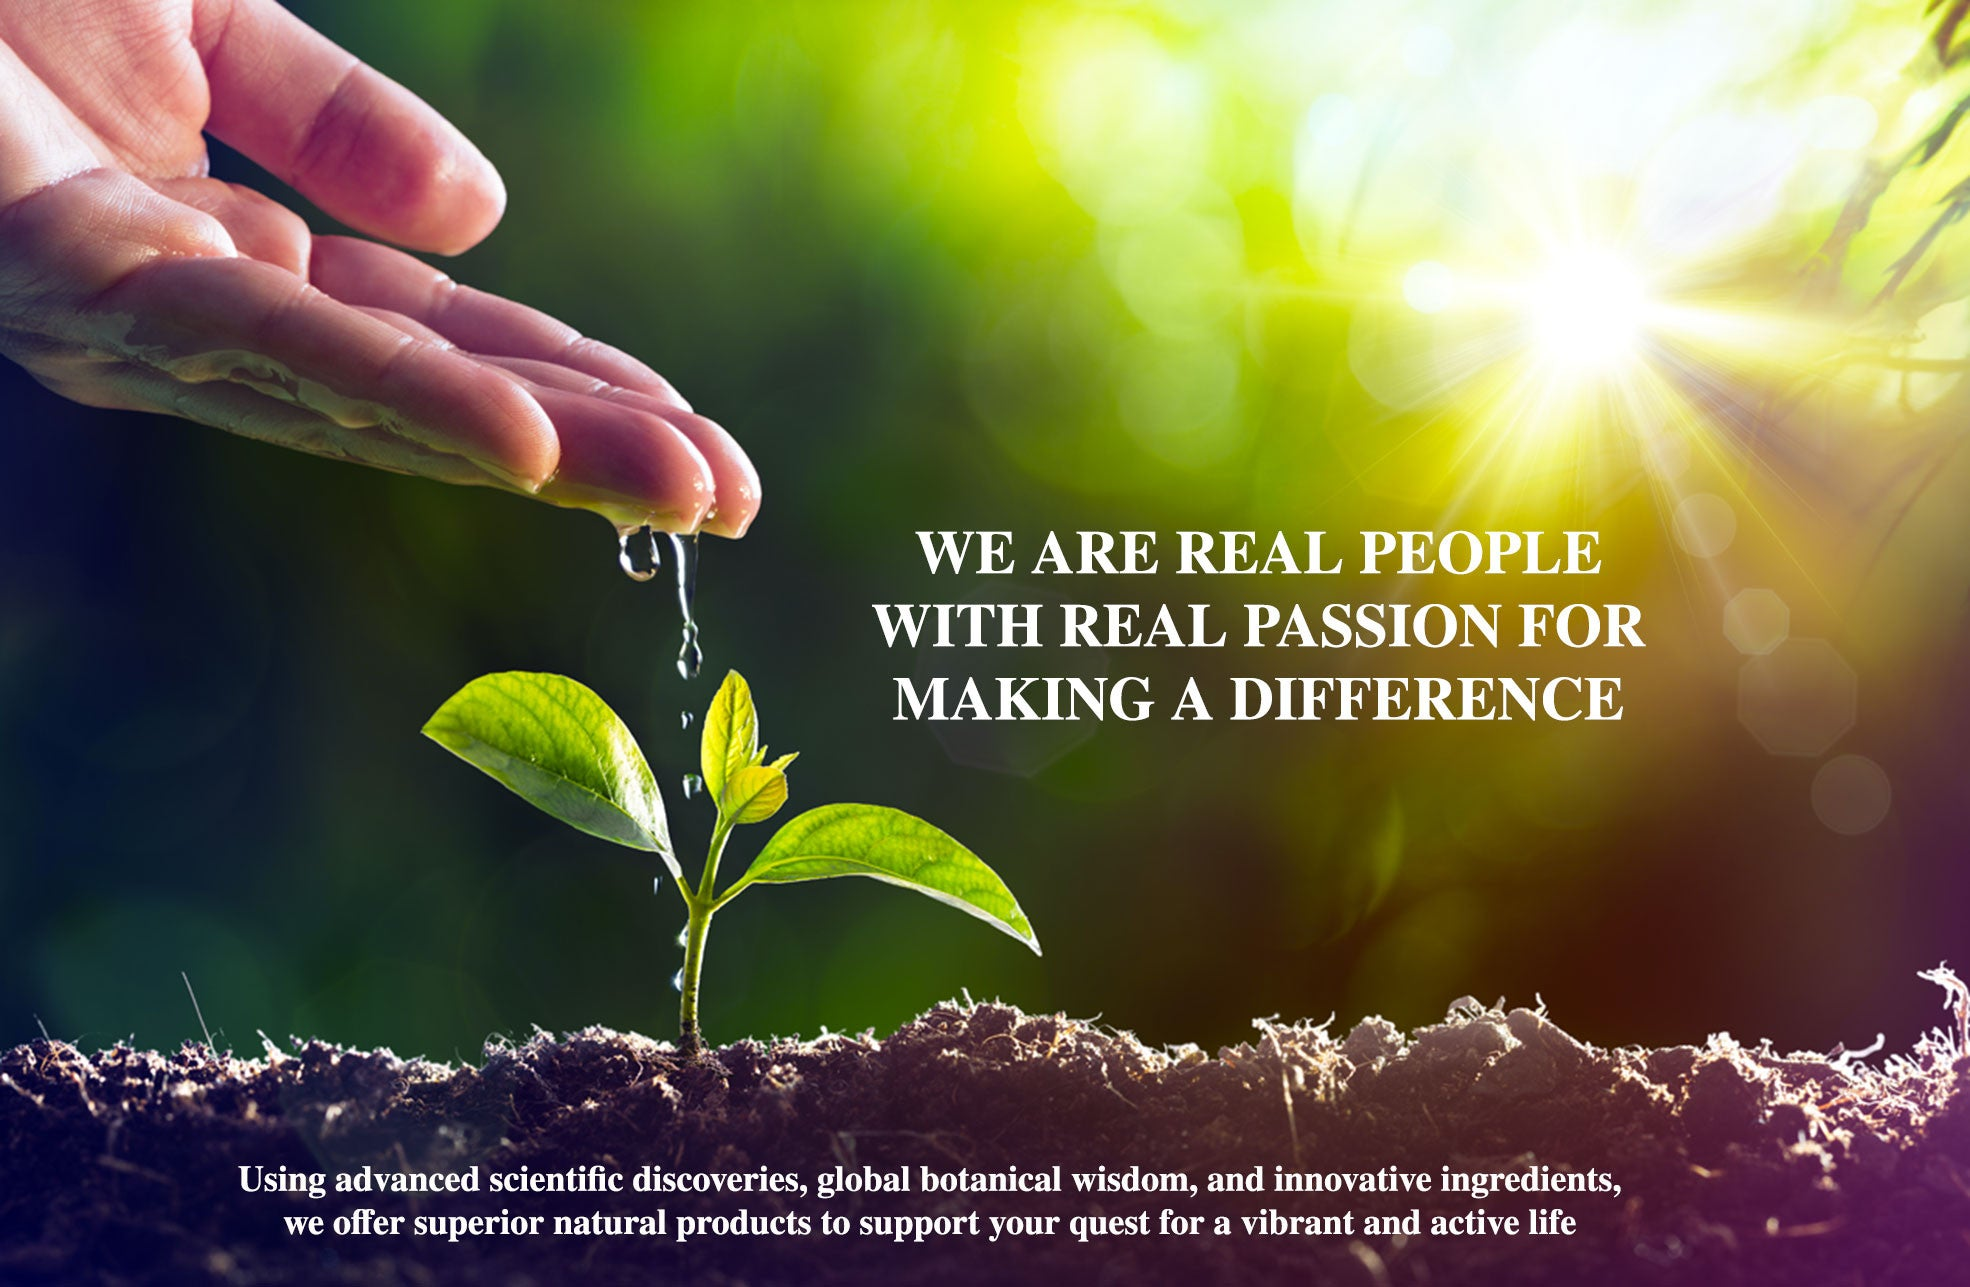 WE ARE REAL PEOPLE WITH<br />A REAL PASSION FOR MAKING A DIFFERENCE